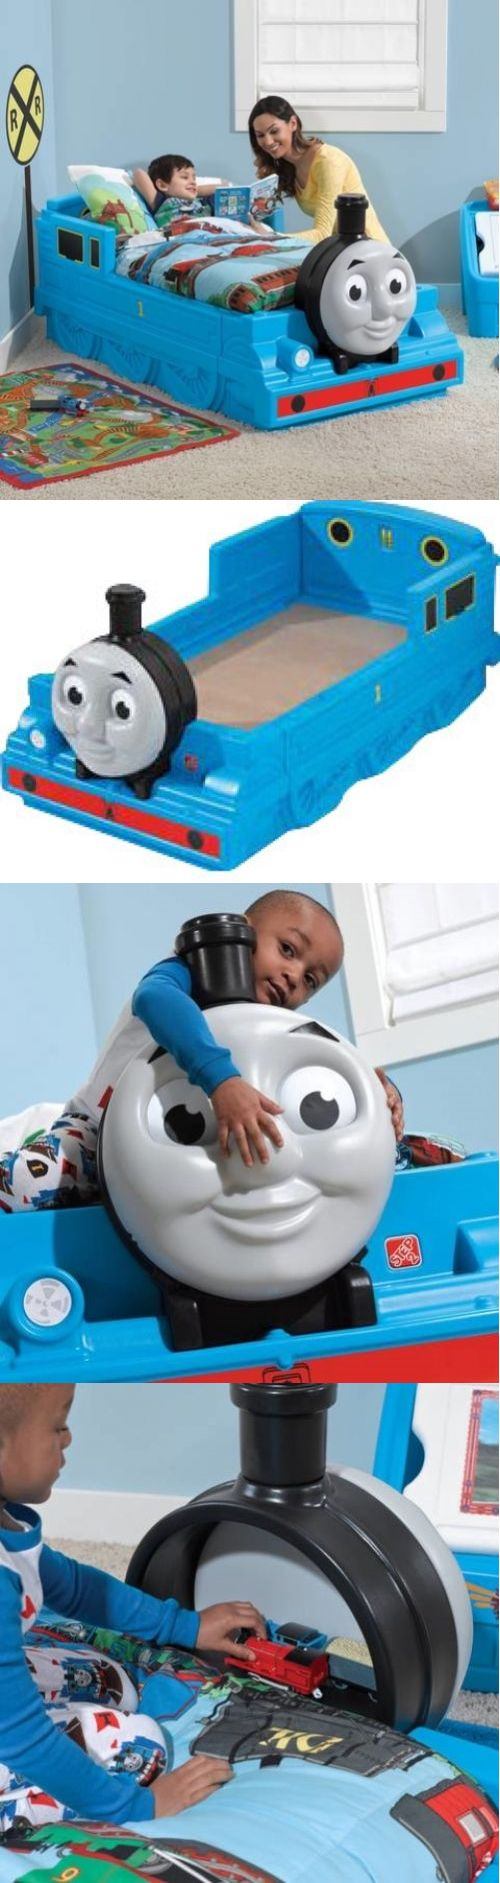 Home Decor: Thomas The Tank Engine Toddler Bed Favorite Tank Engine Made In The Usa -> BUY IT NOW ONLY: $313.53 on eBay!